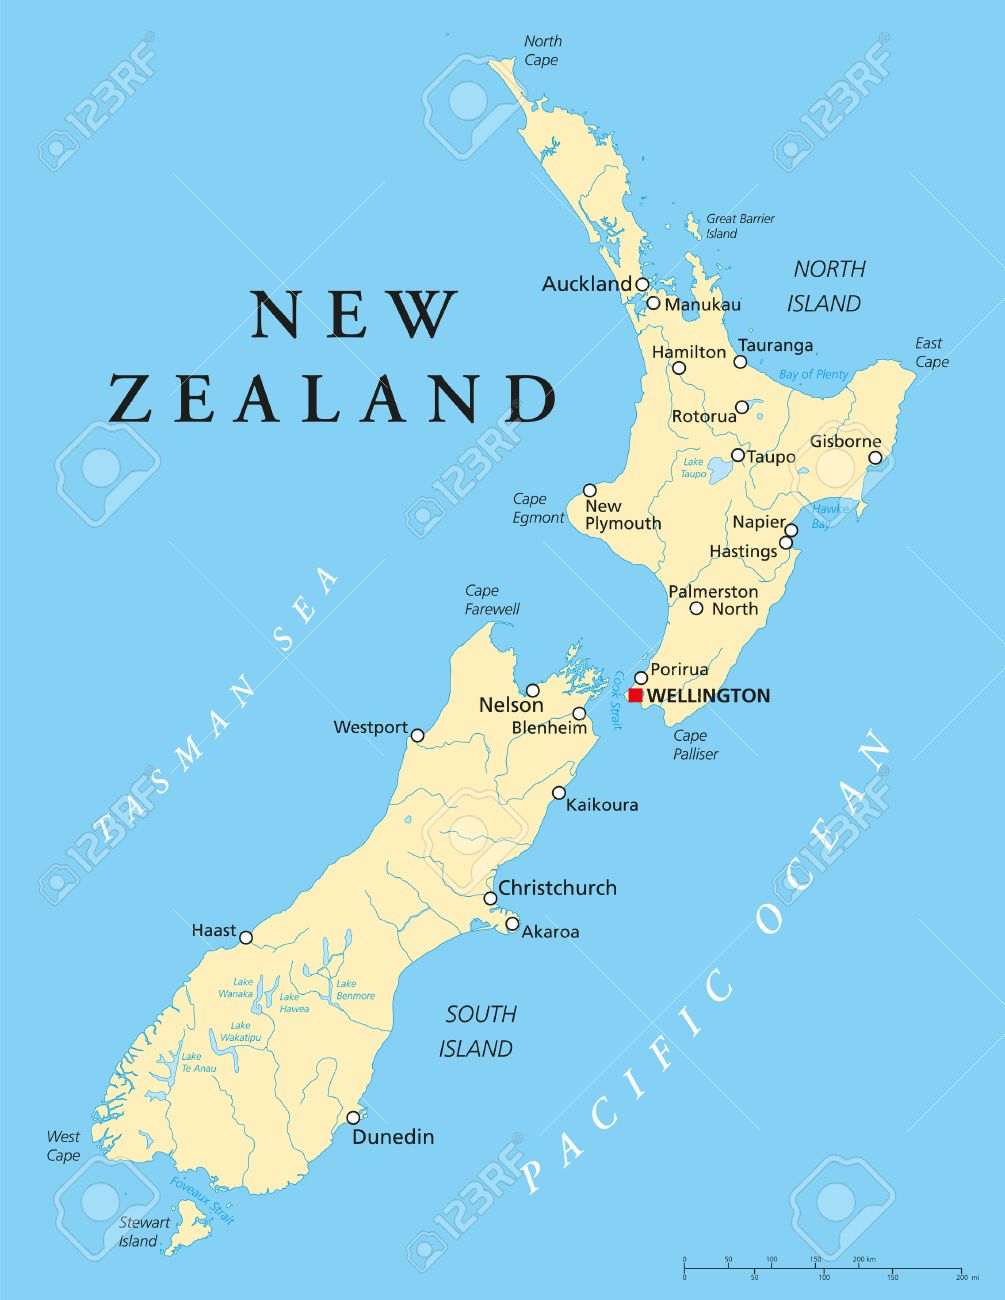 Where Is Wellington New Zealand On The Map.New Zealand Political Map With Capital Wellington National Borders